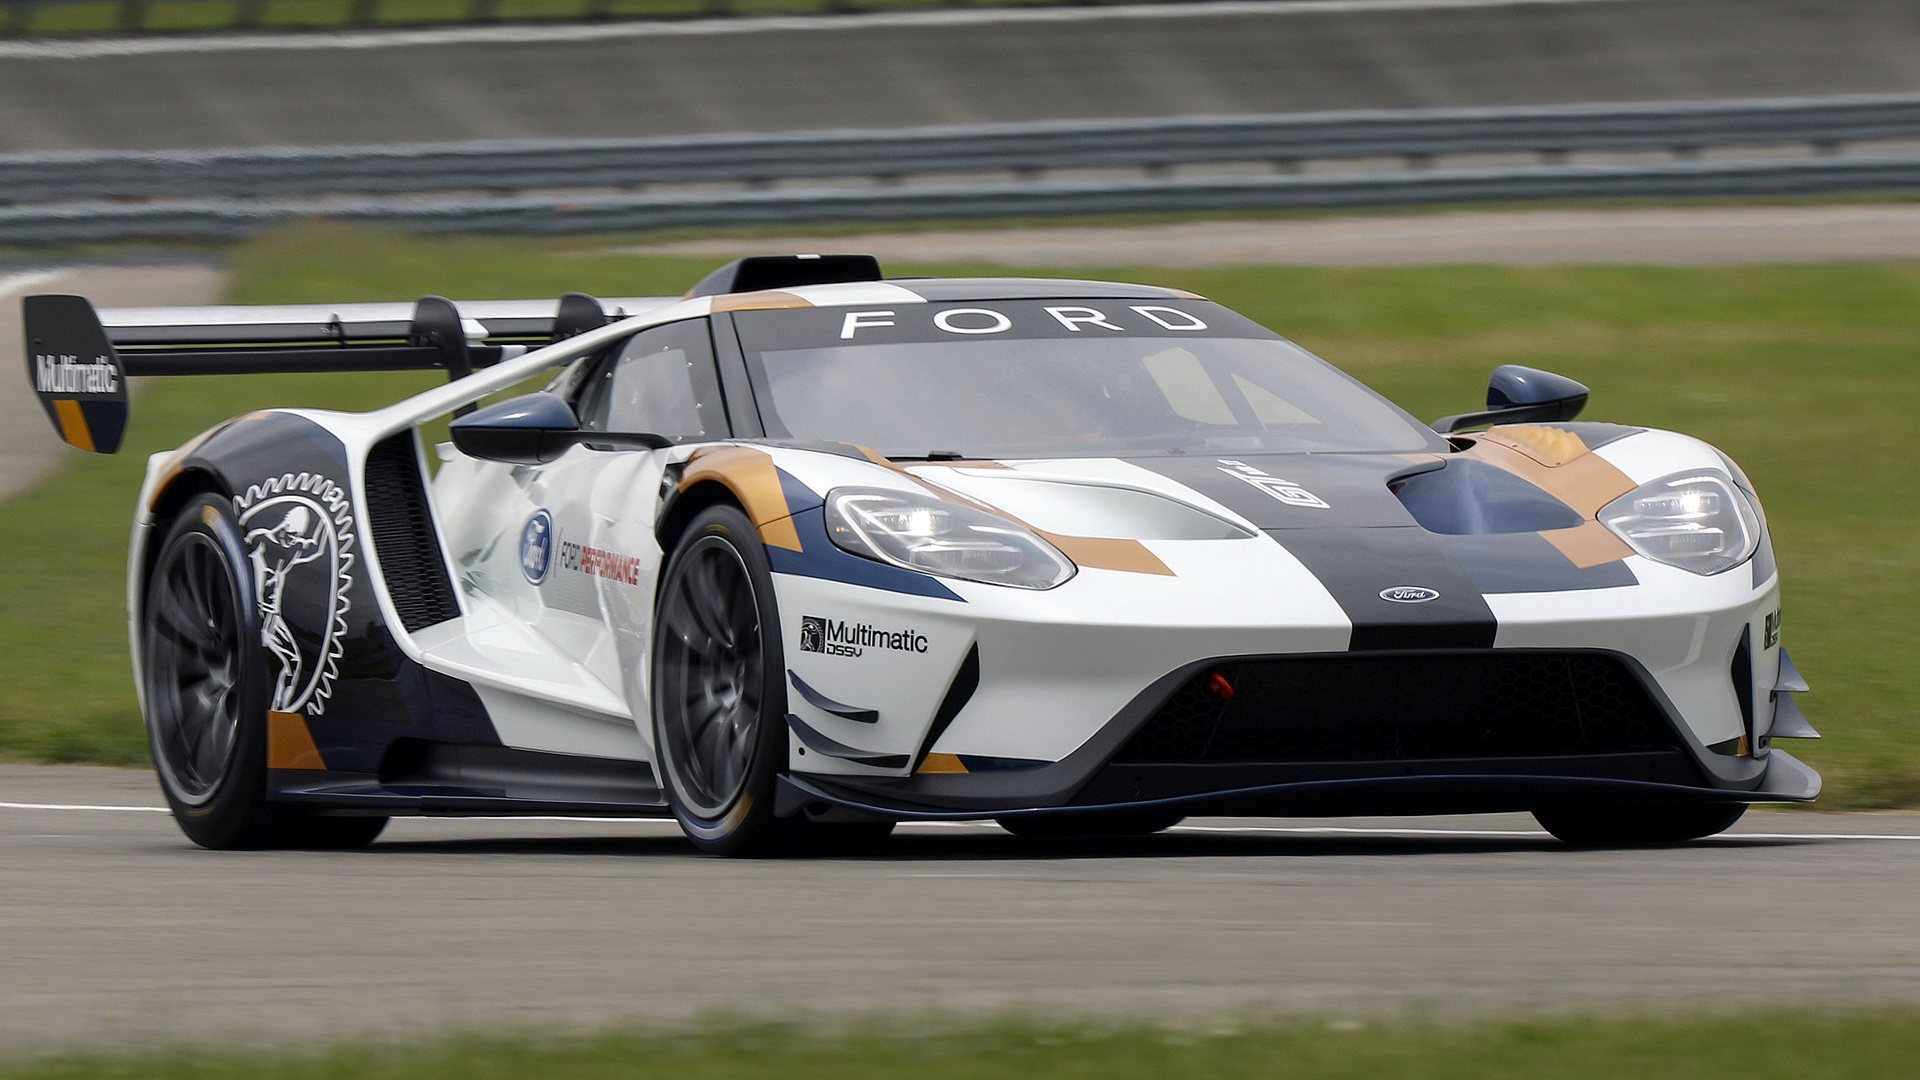 2019 Ford GT MK II   Wallpapers and HD Images Car Pixel 1920x1080